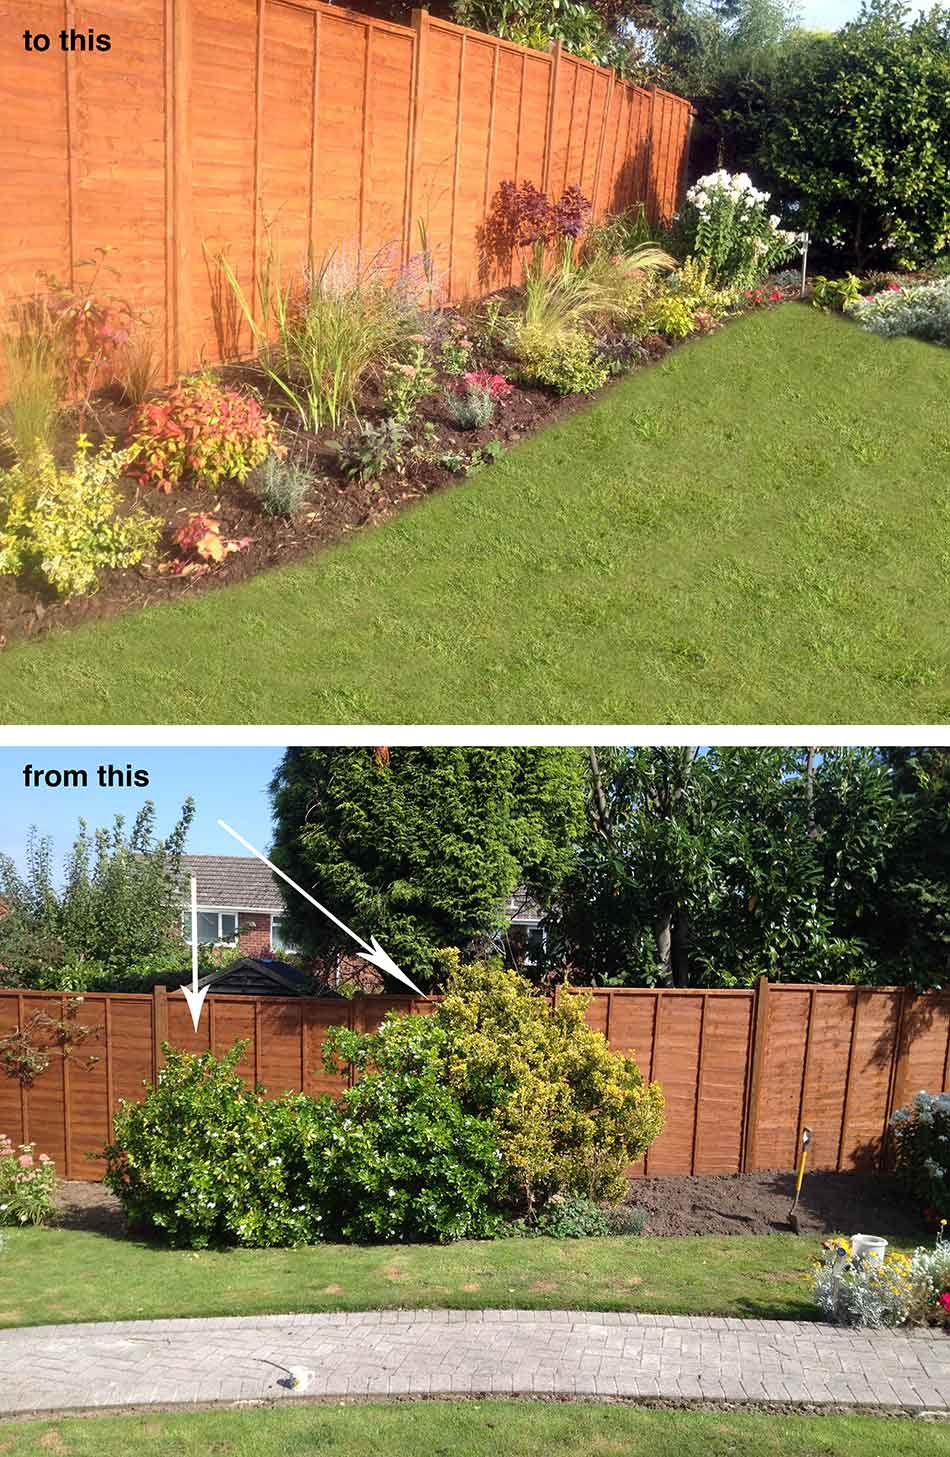 garden design in telford hornby garden designs garden design ideas garden designer garden border designs telford uk